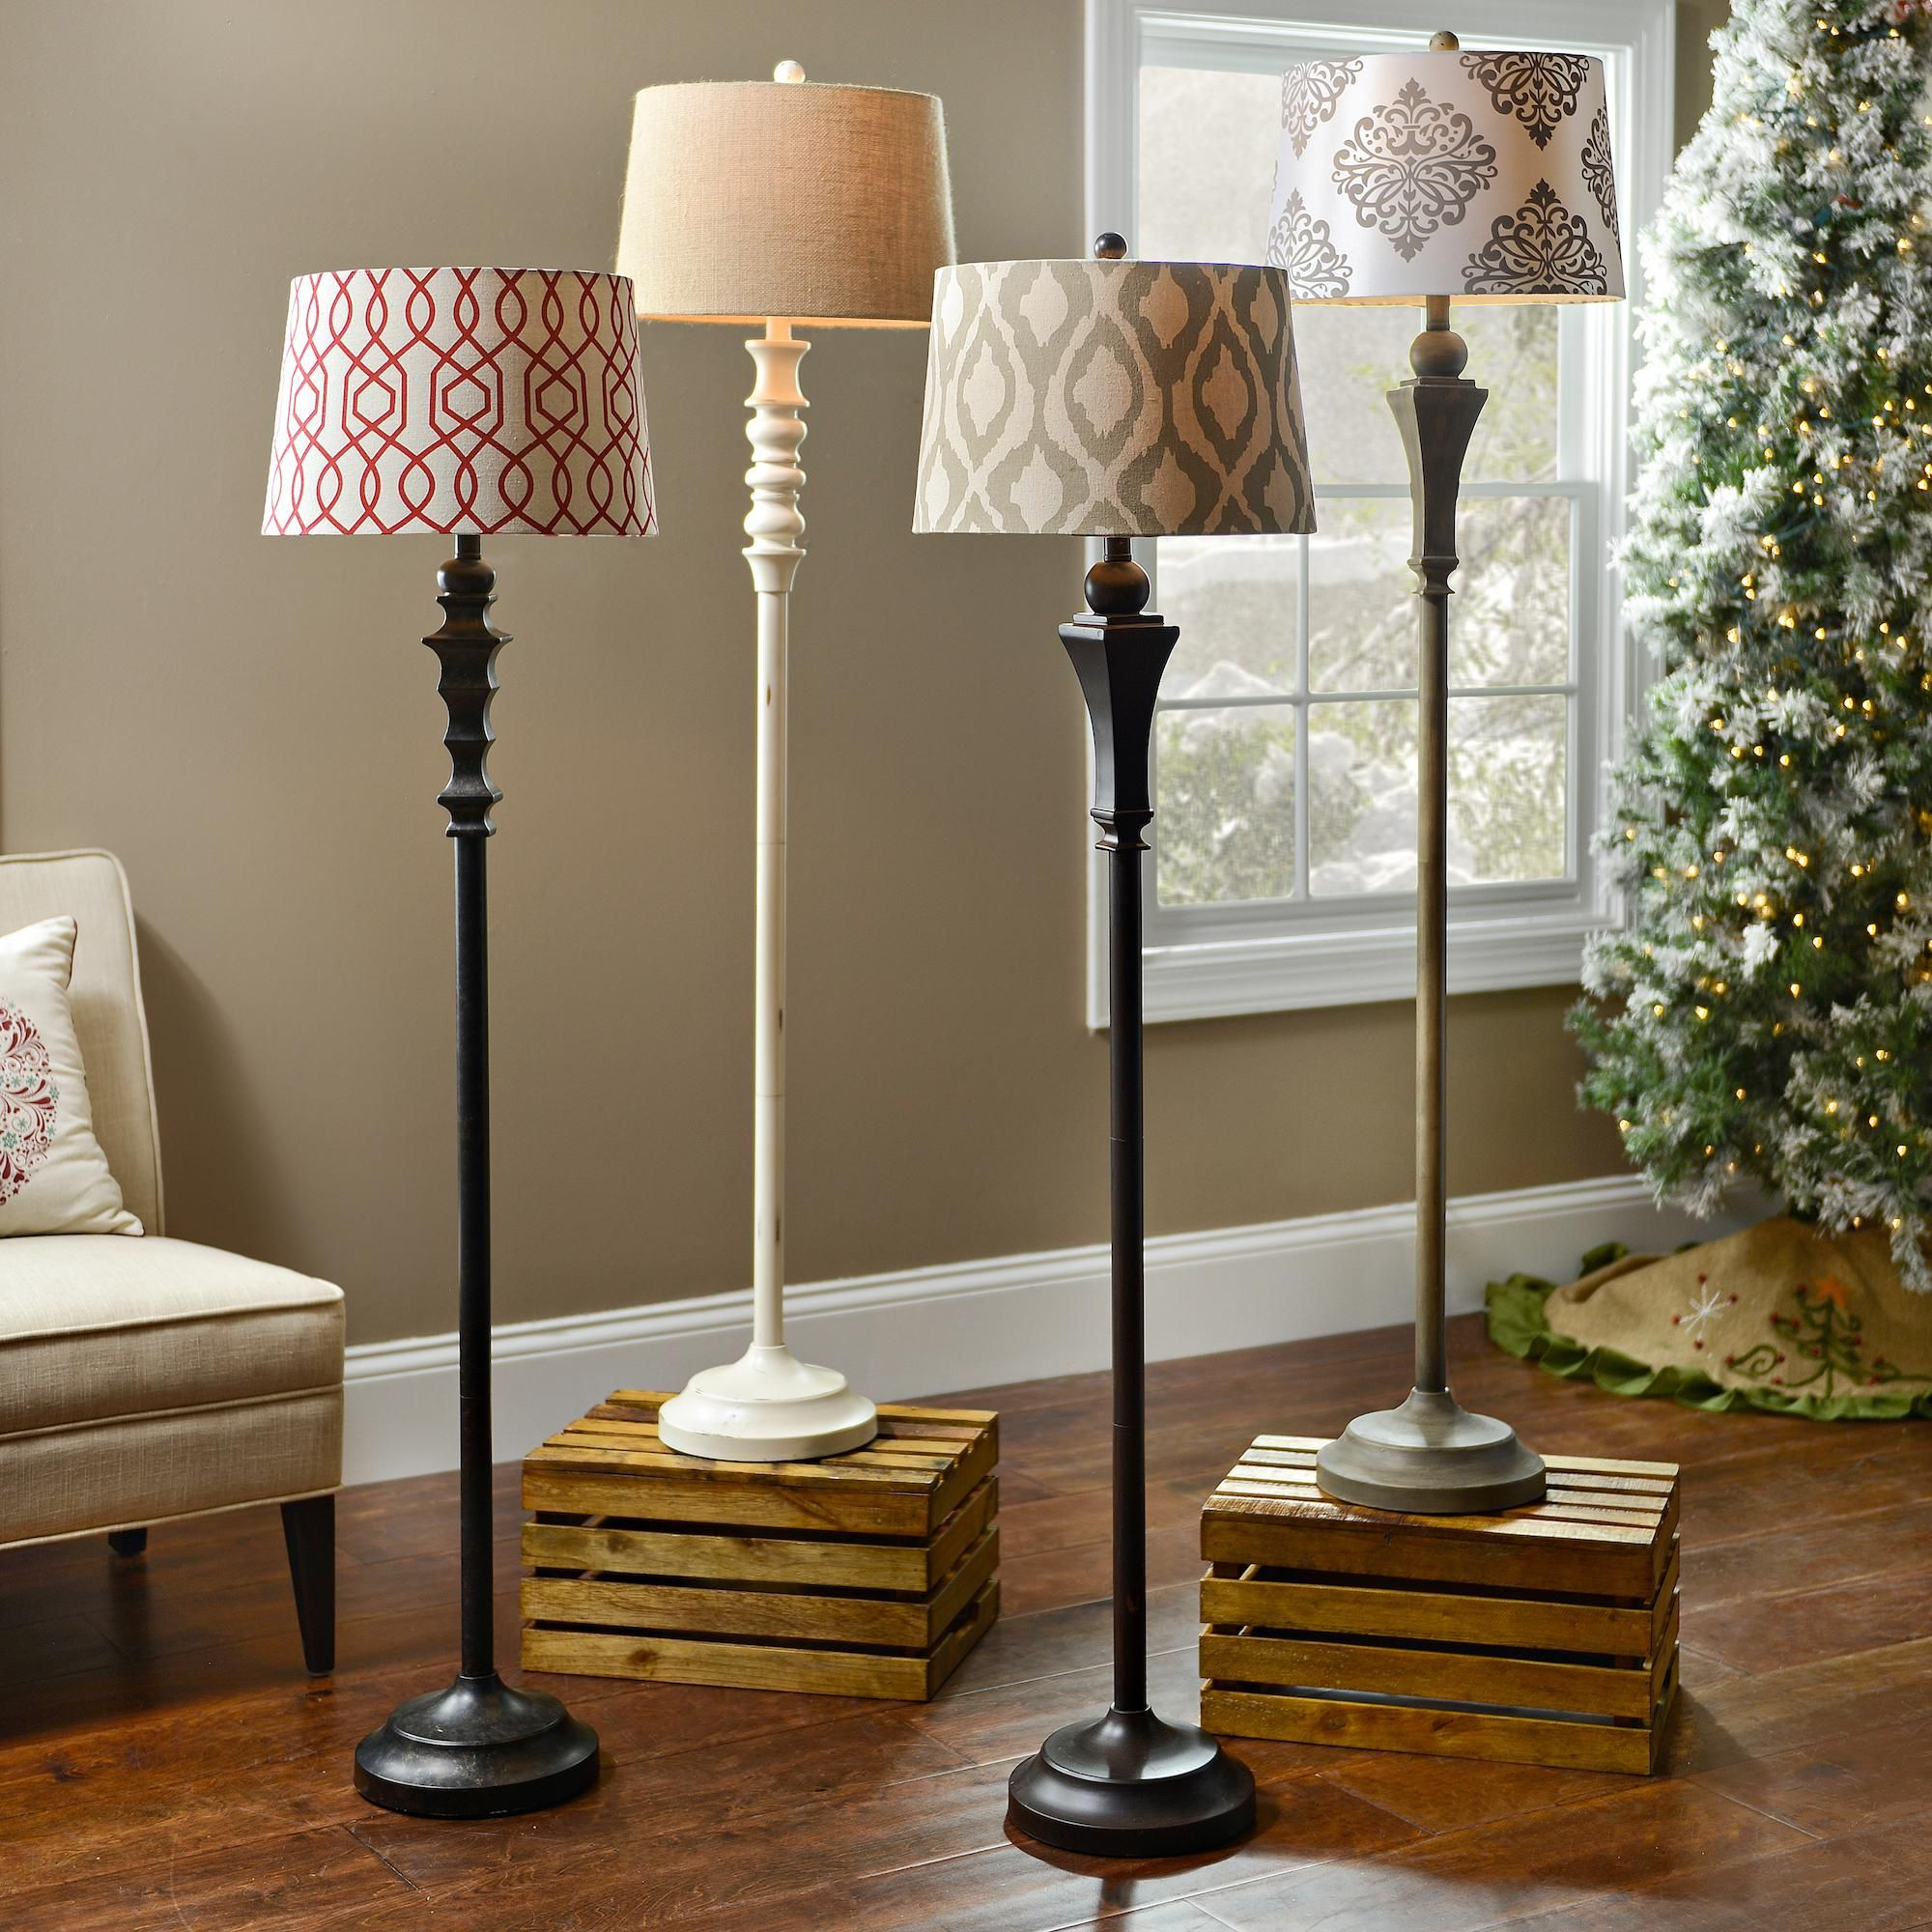 Floor Lamps Living Room. Add light to a dim corner with stylish floor lamp  Love Your